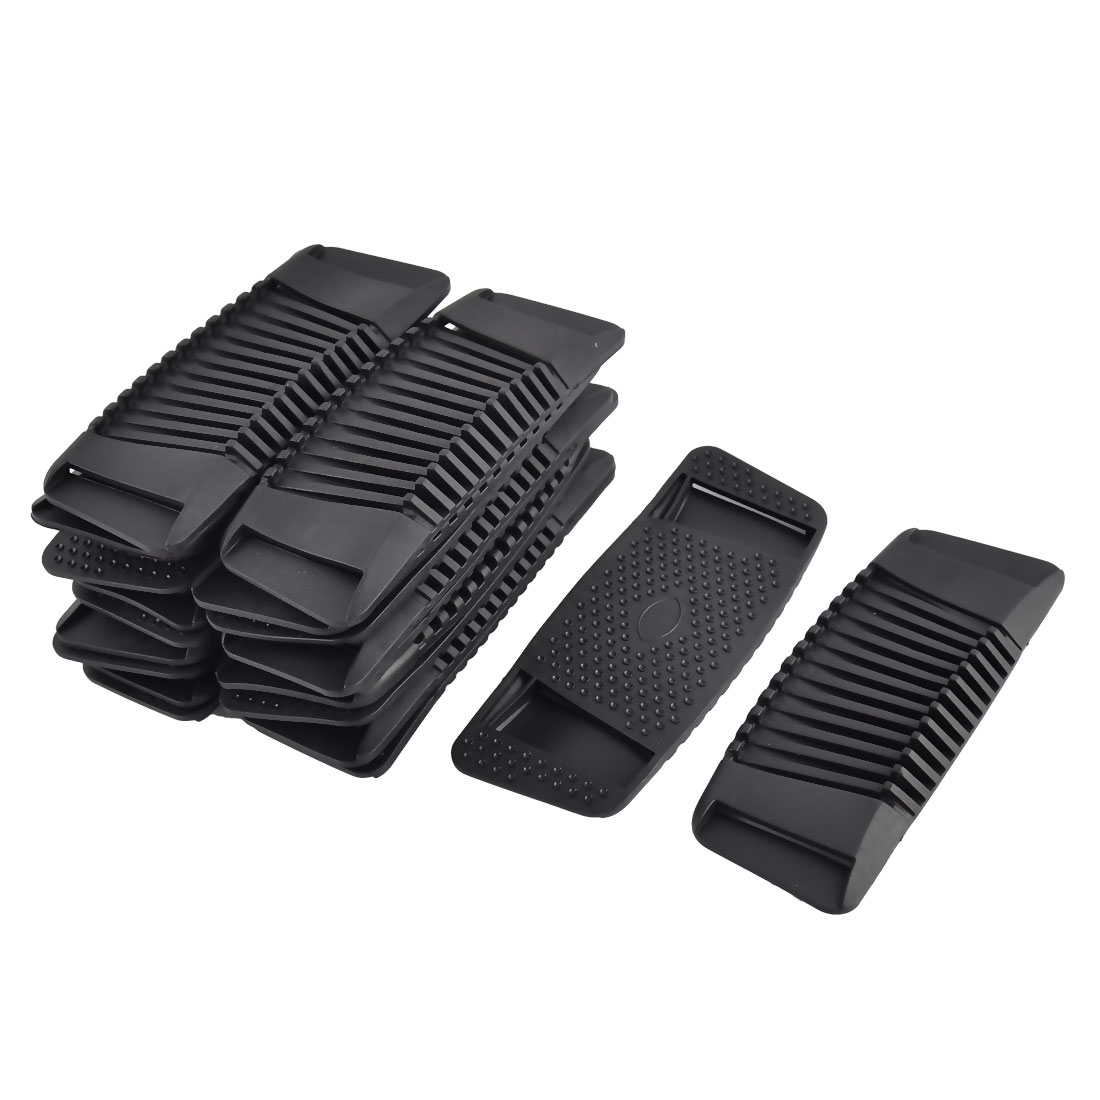 Backpack Plastic Rectangle Non-slip Replacement Bag Strap Pads Black 20pcs